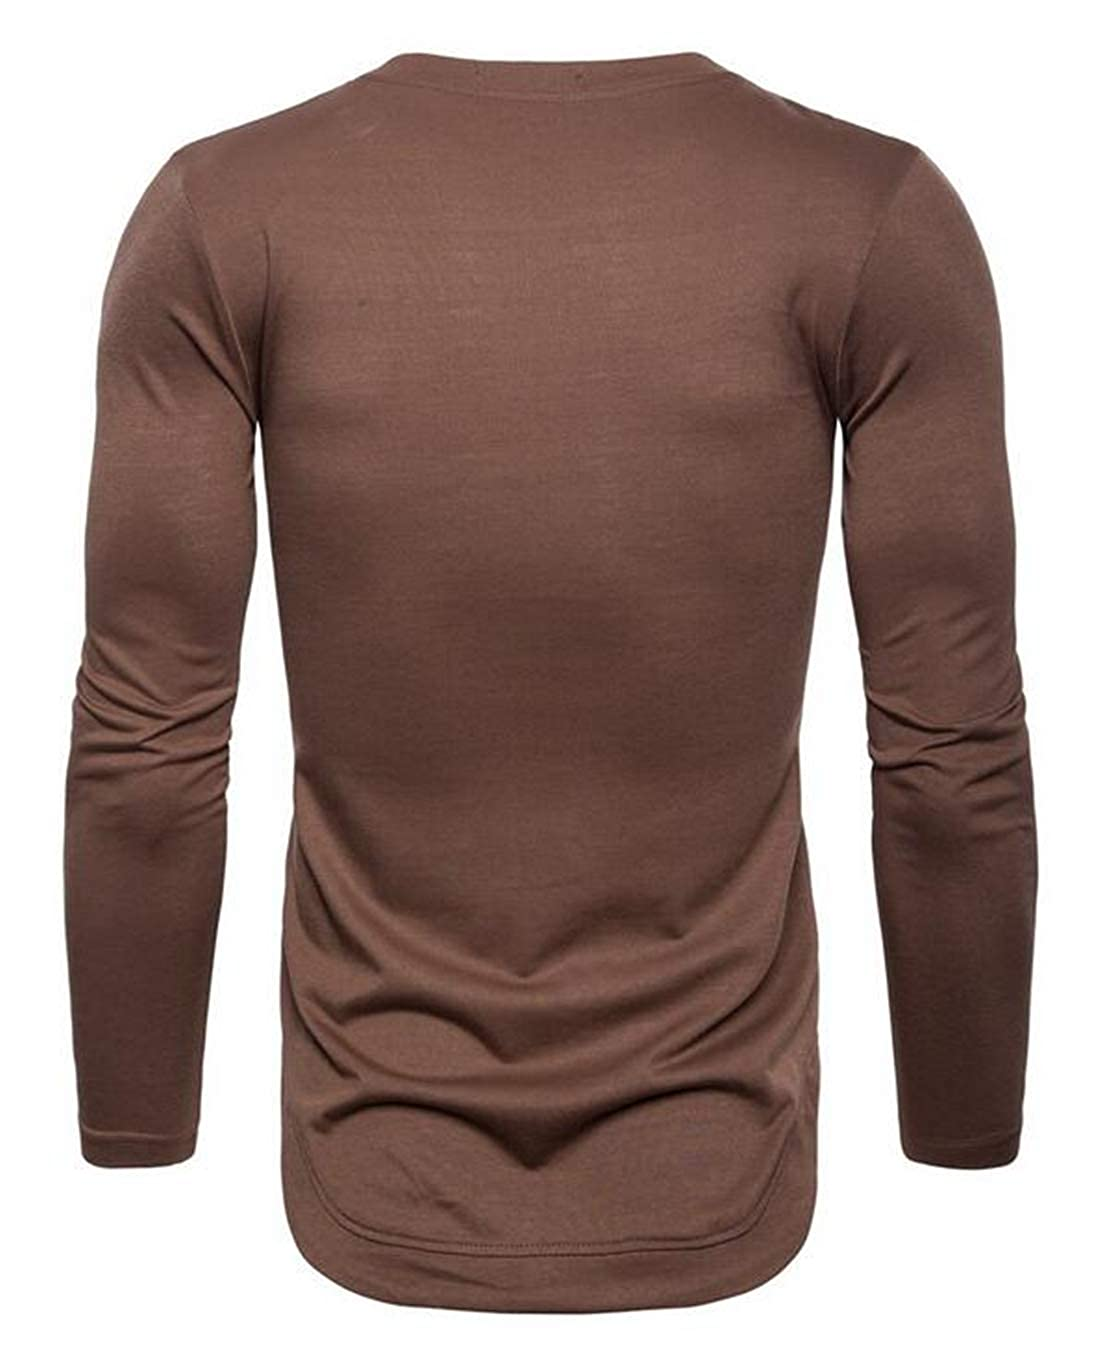 Rrive Mens Plain Slim Fit Long Sleeve MuscleCompression Comfy Round Neck T-Shirts Tee